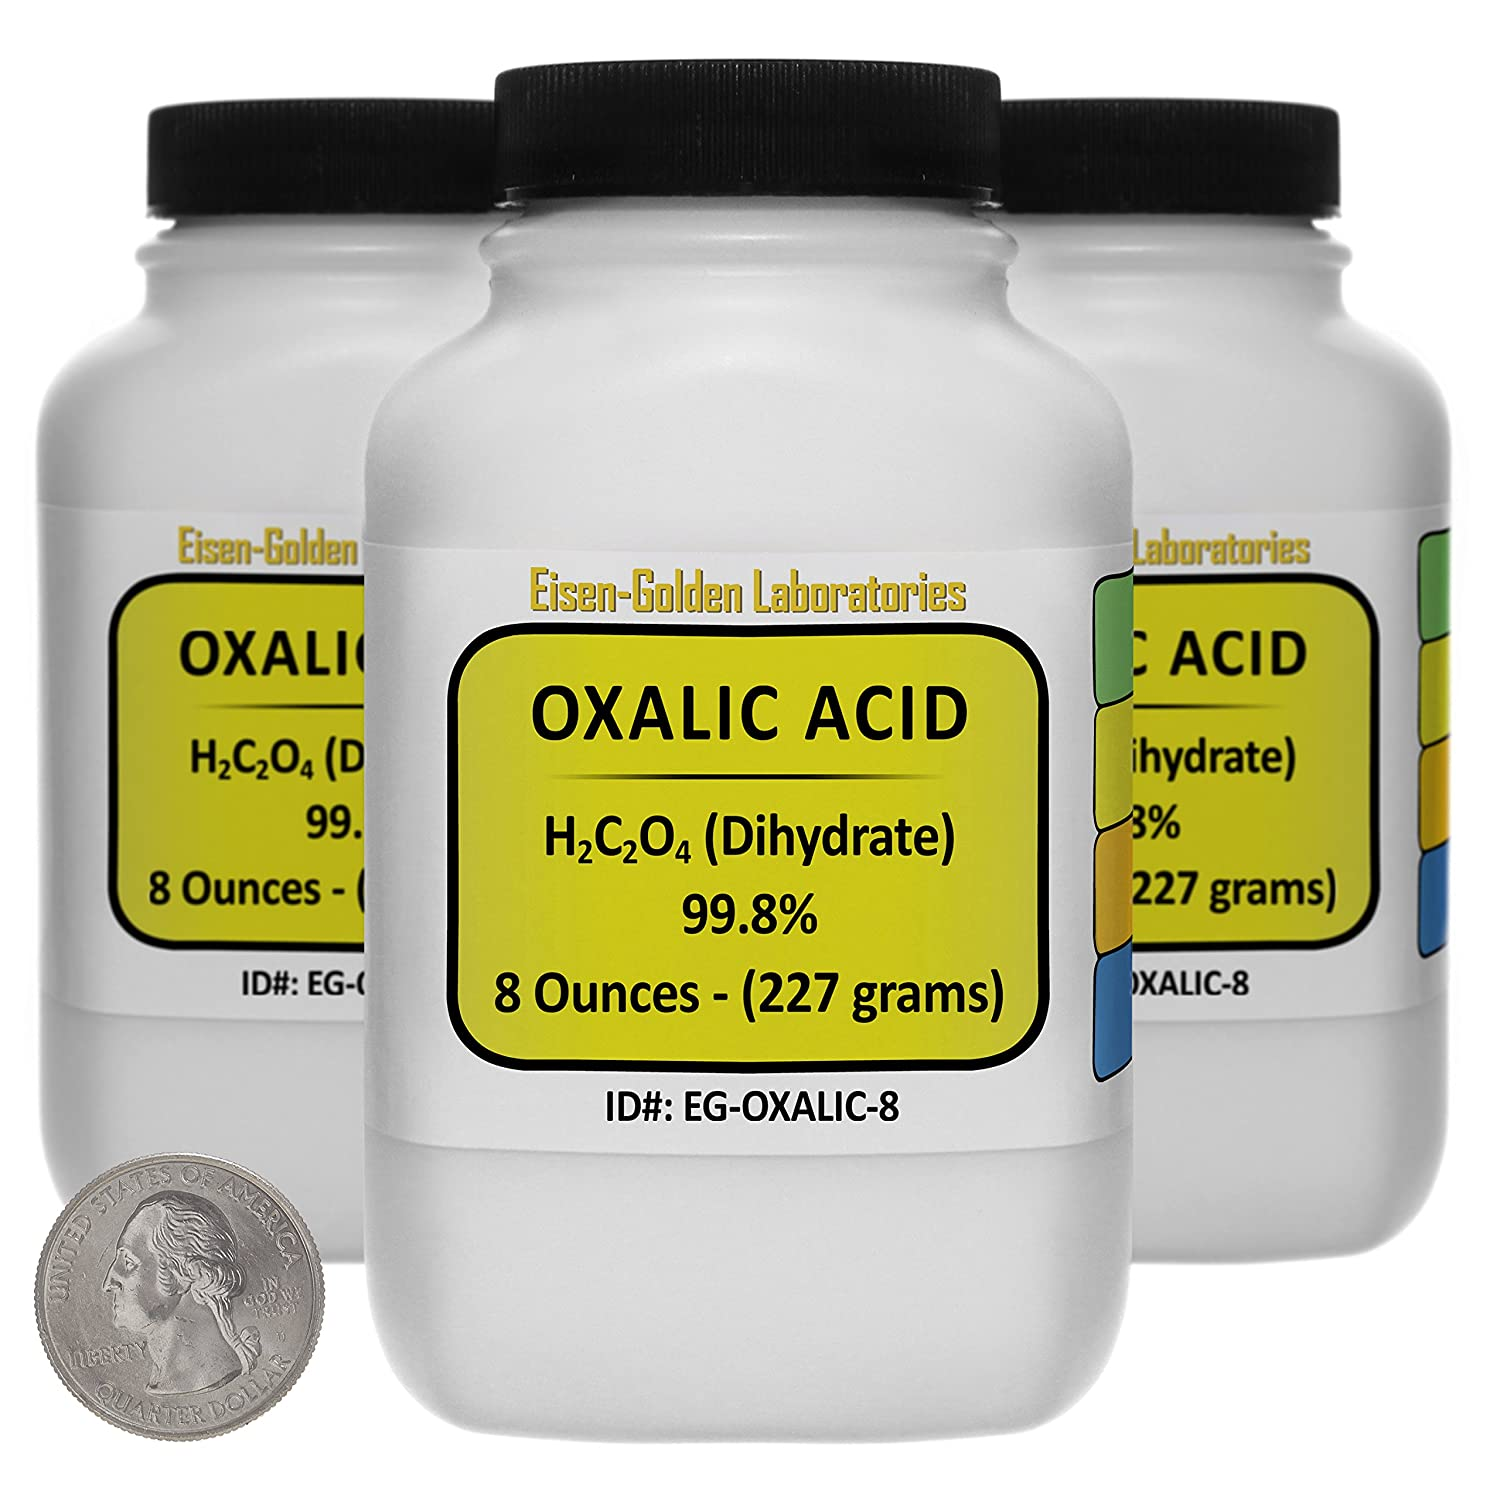 Oxalic Acid [C2H2O4] 99.8% ACS Grade Powder 1.5 Lb in Three Space-Saver Bottles USA Eisen-Golden Laboratories EG-OXALIC-24/3